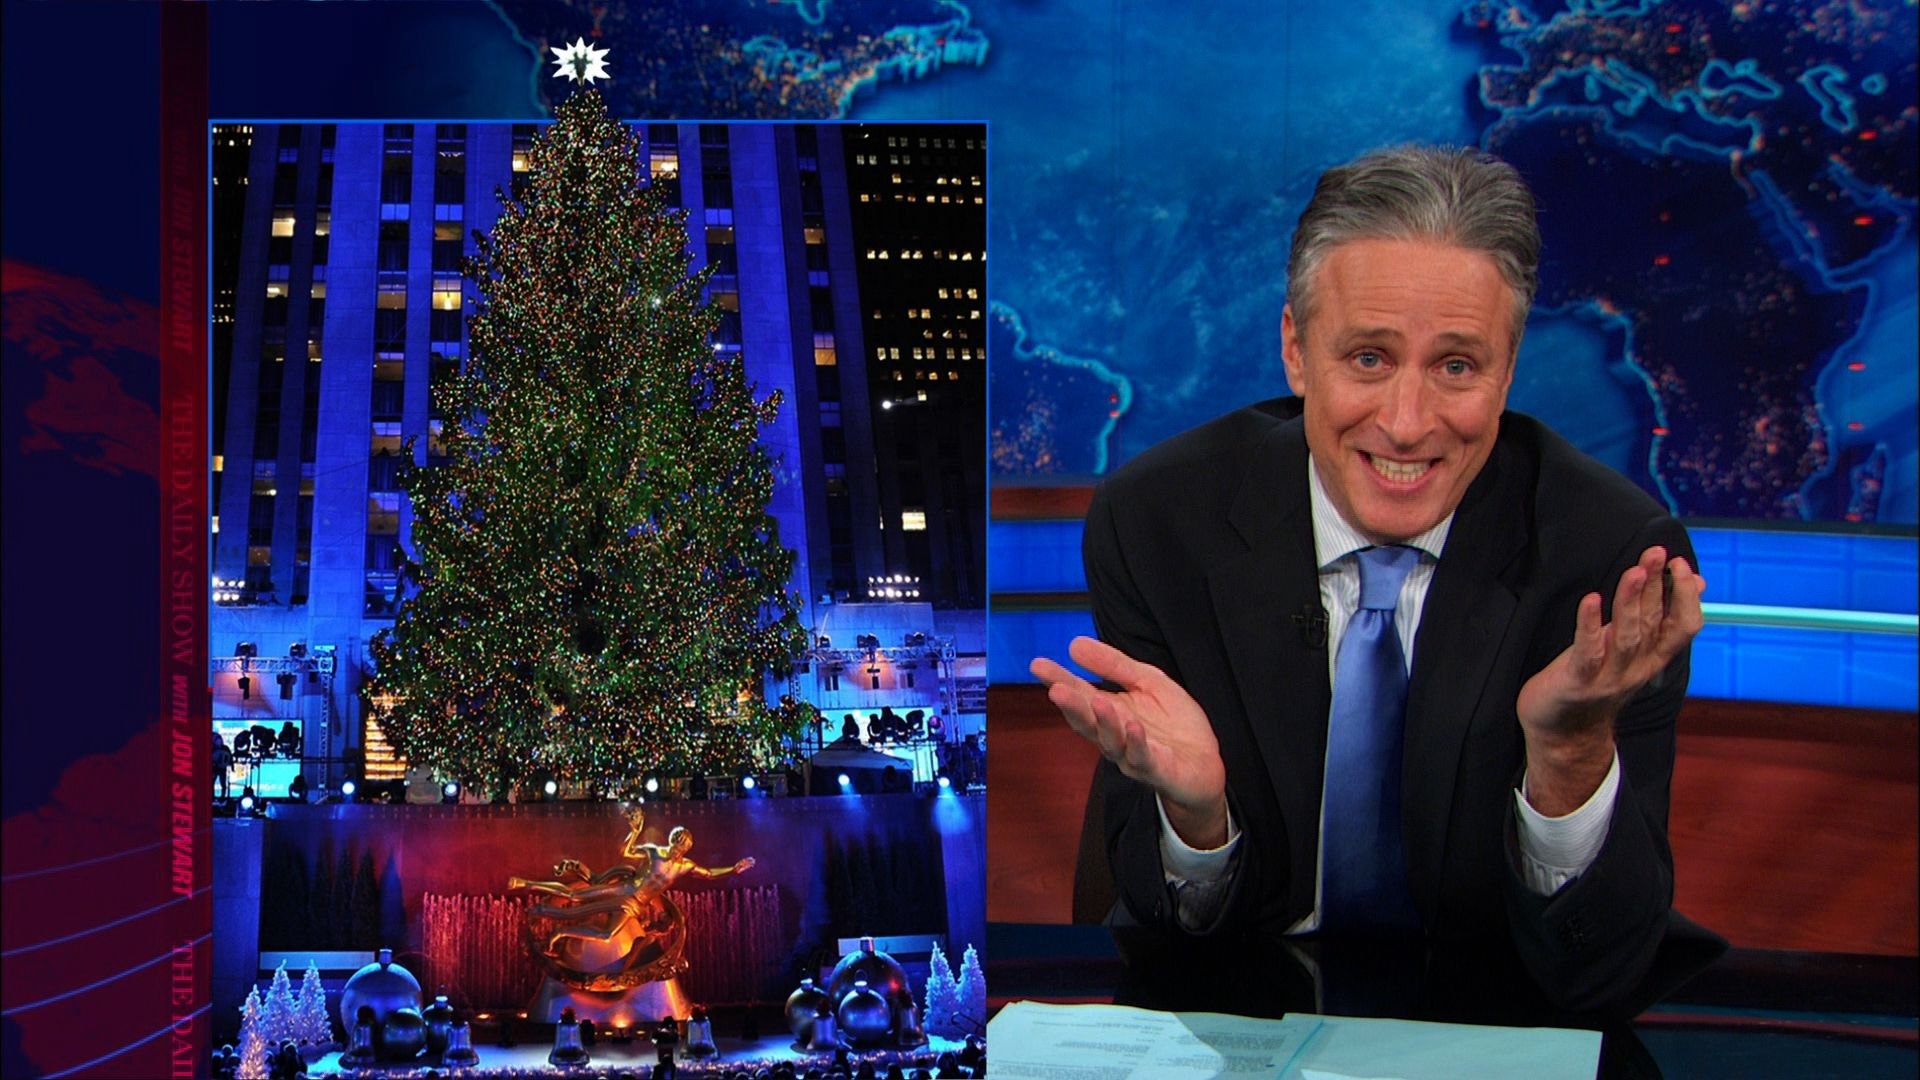 World War C - The Daily Show with Jon Stewart (Video Clip) | Comedy ...